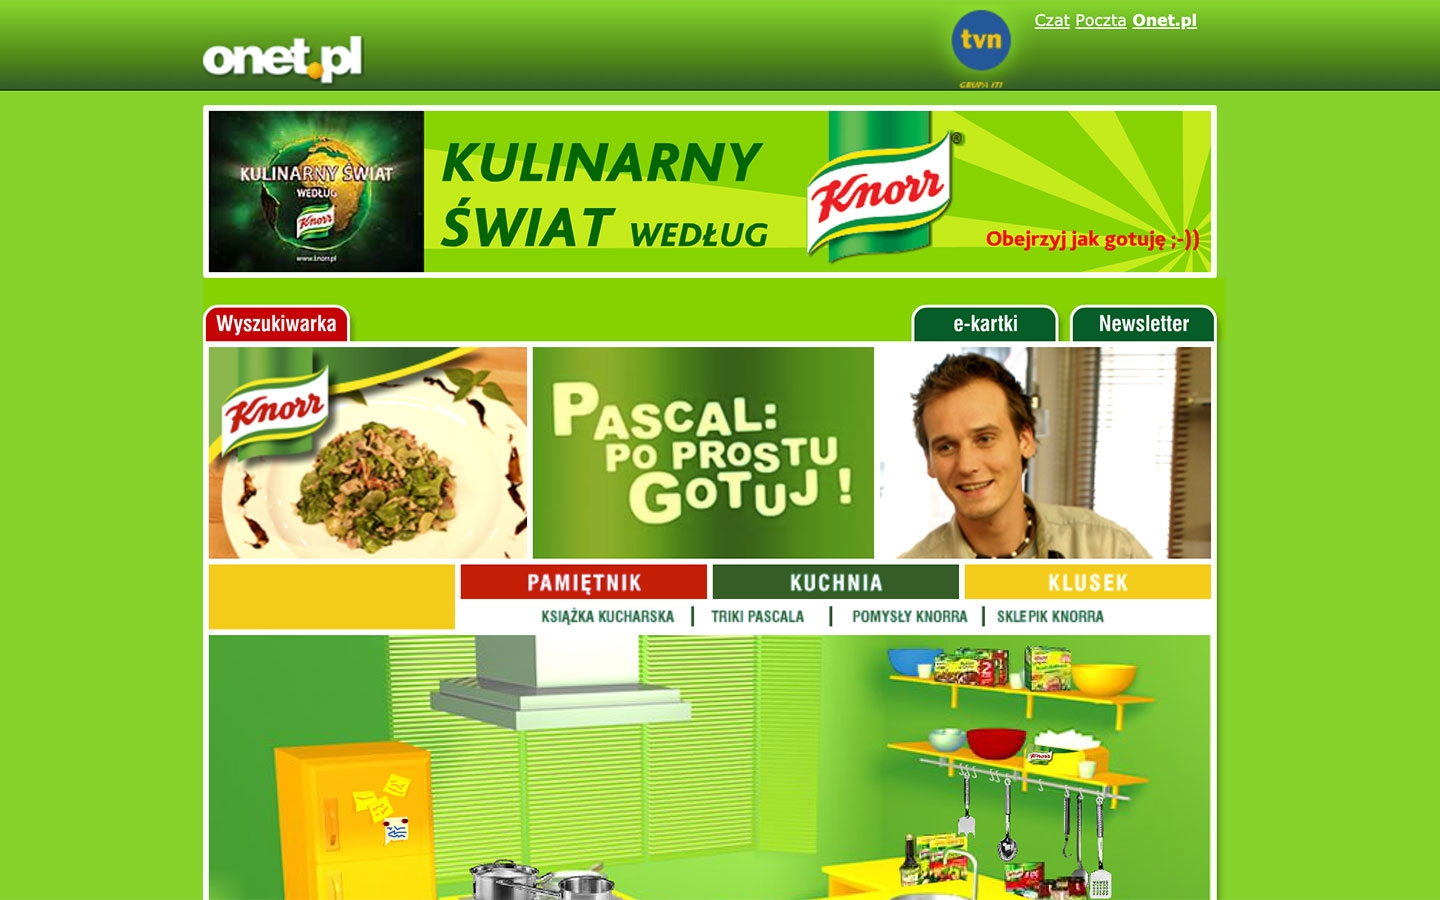 Pascal: Po Prostu Gotuj! | poprostugotuj.onet.pl | 2004 (Screen Only 08) © echonet communication